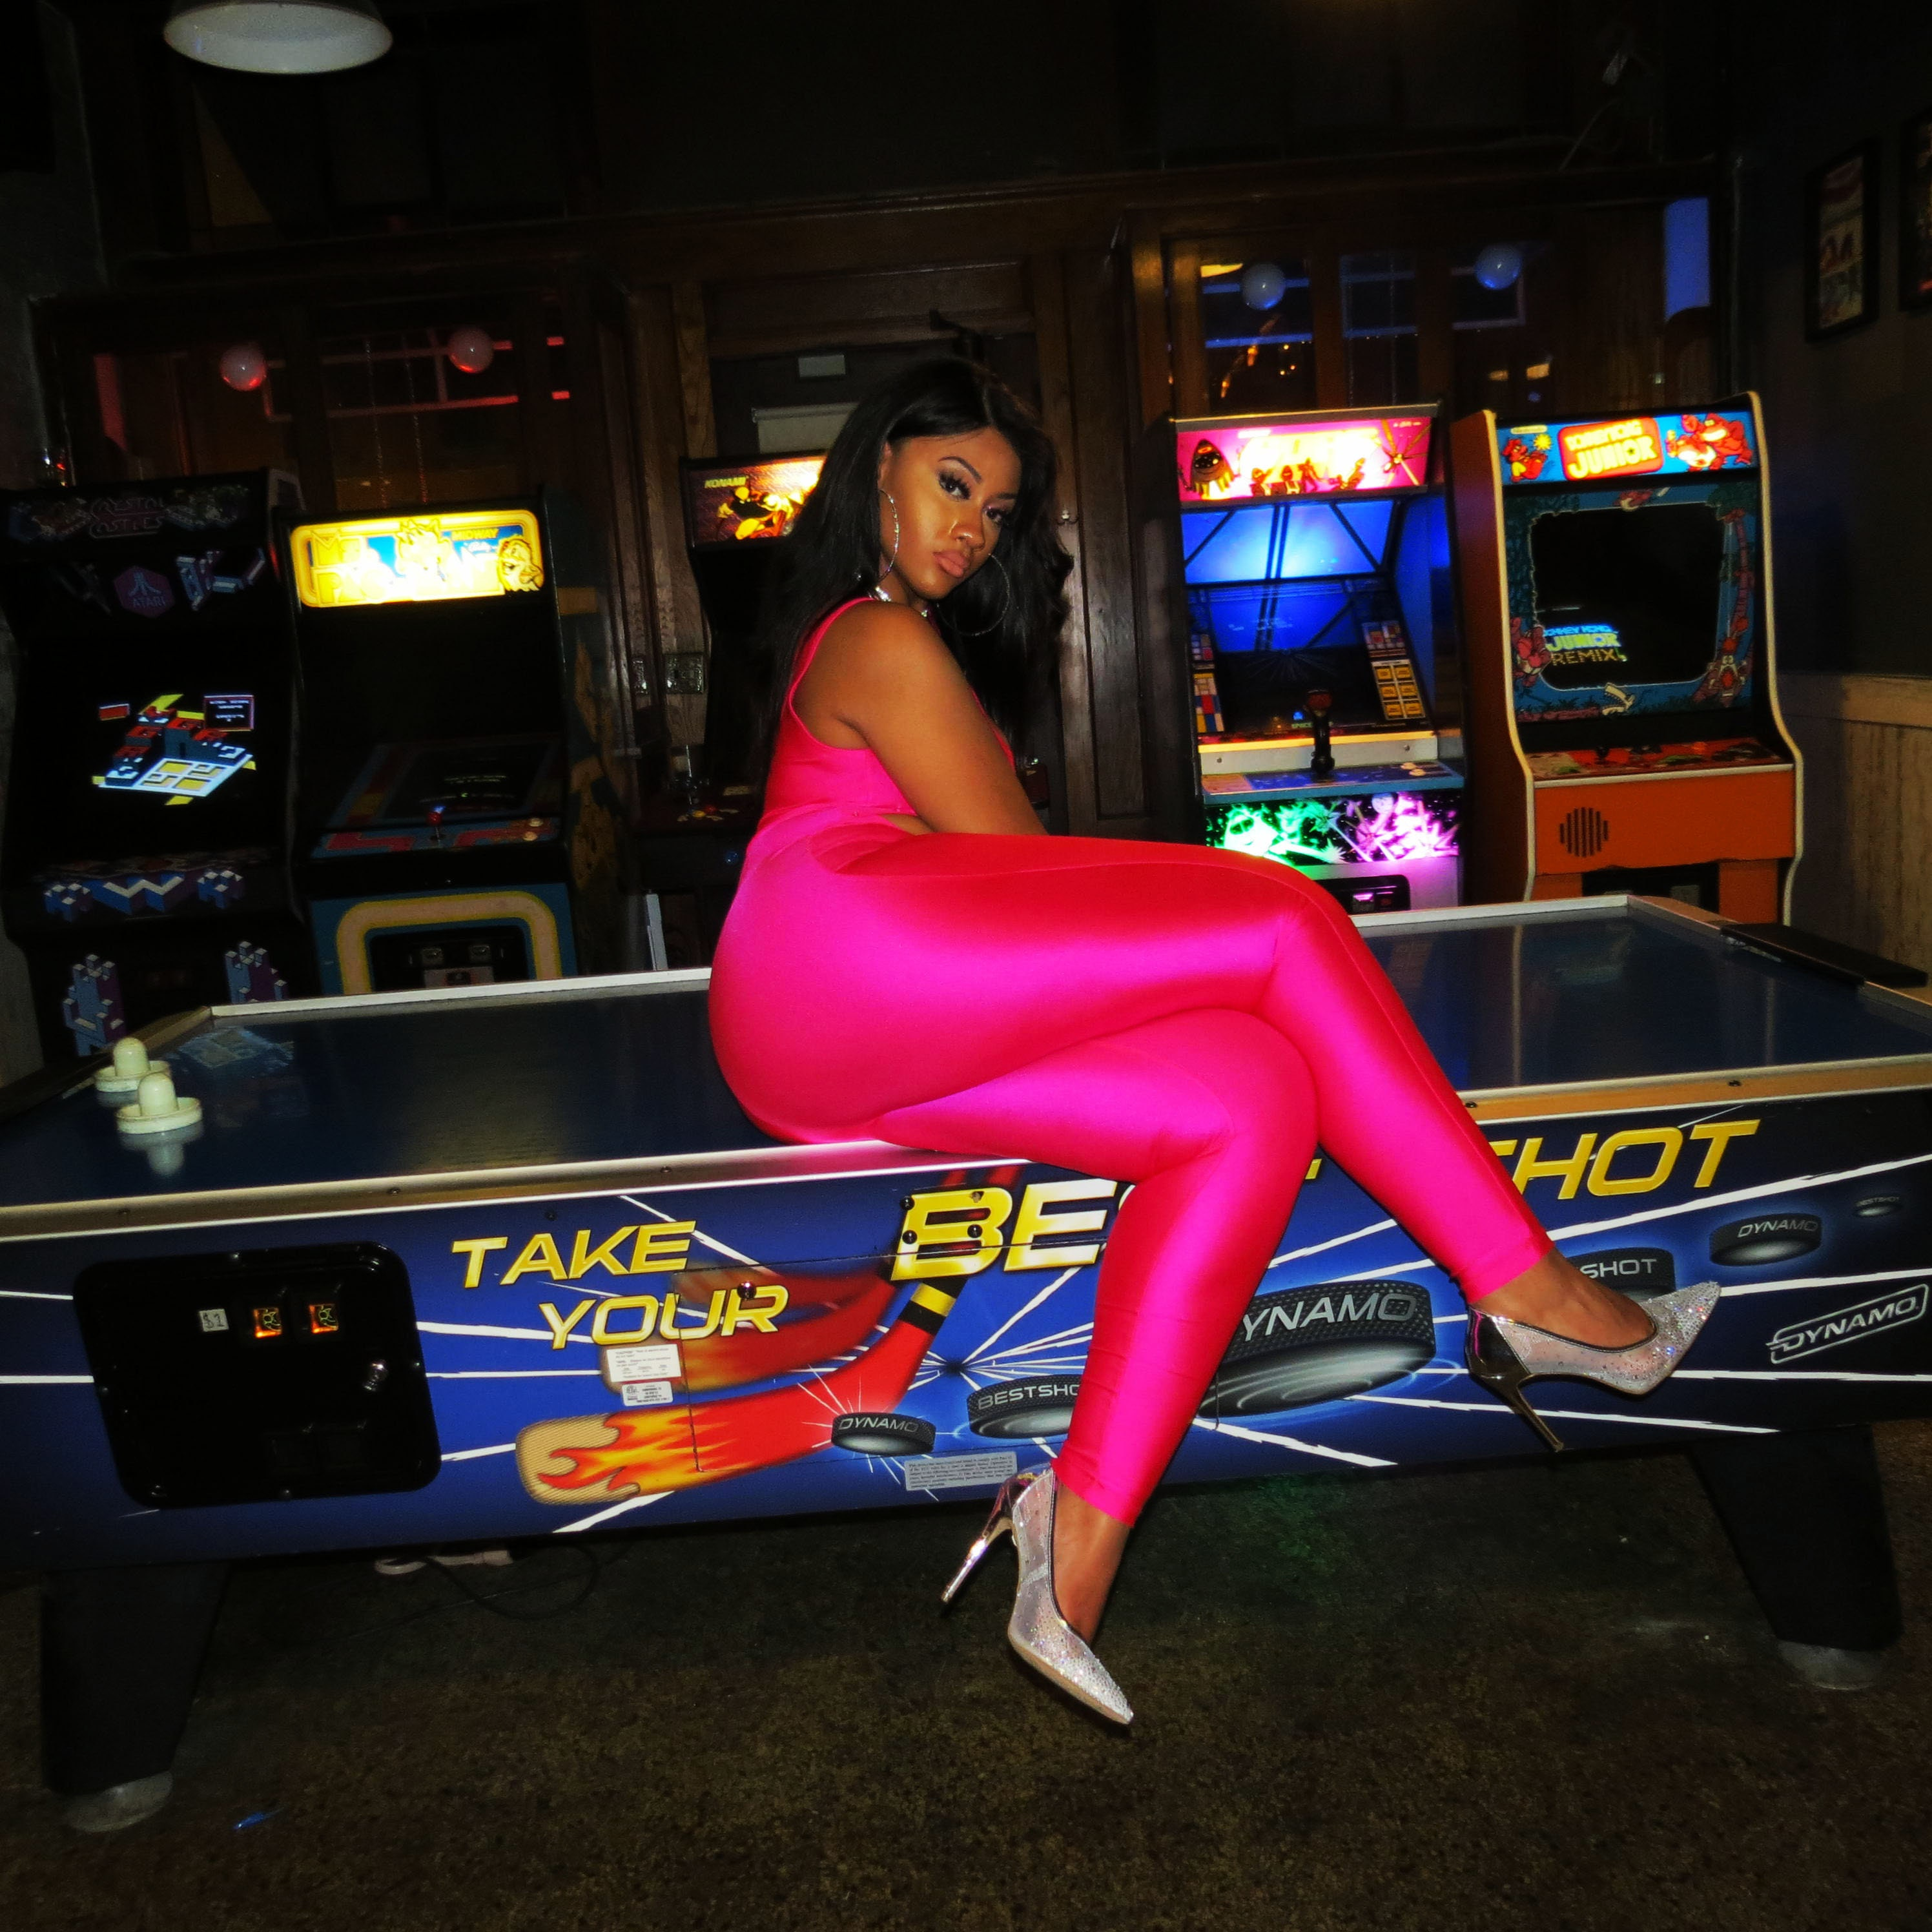 1c9243947b78 Friday Night Pink Neon Jumpsuit. gallery photo gallery photo gallery photo  gallery photo gallery photo gallery photo ...